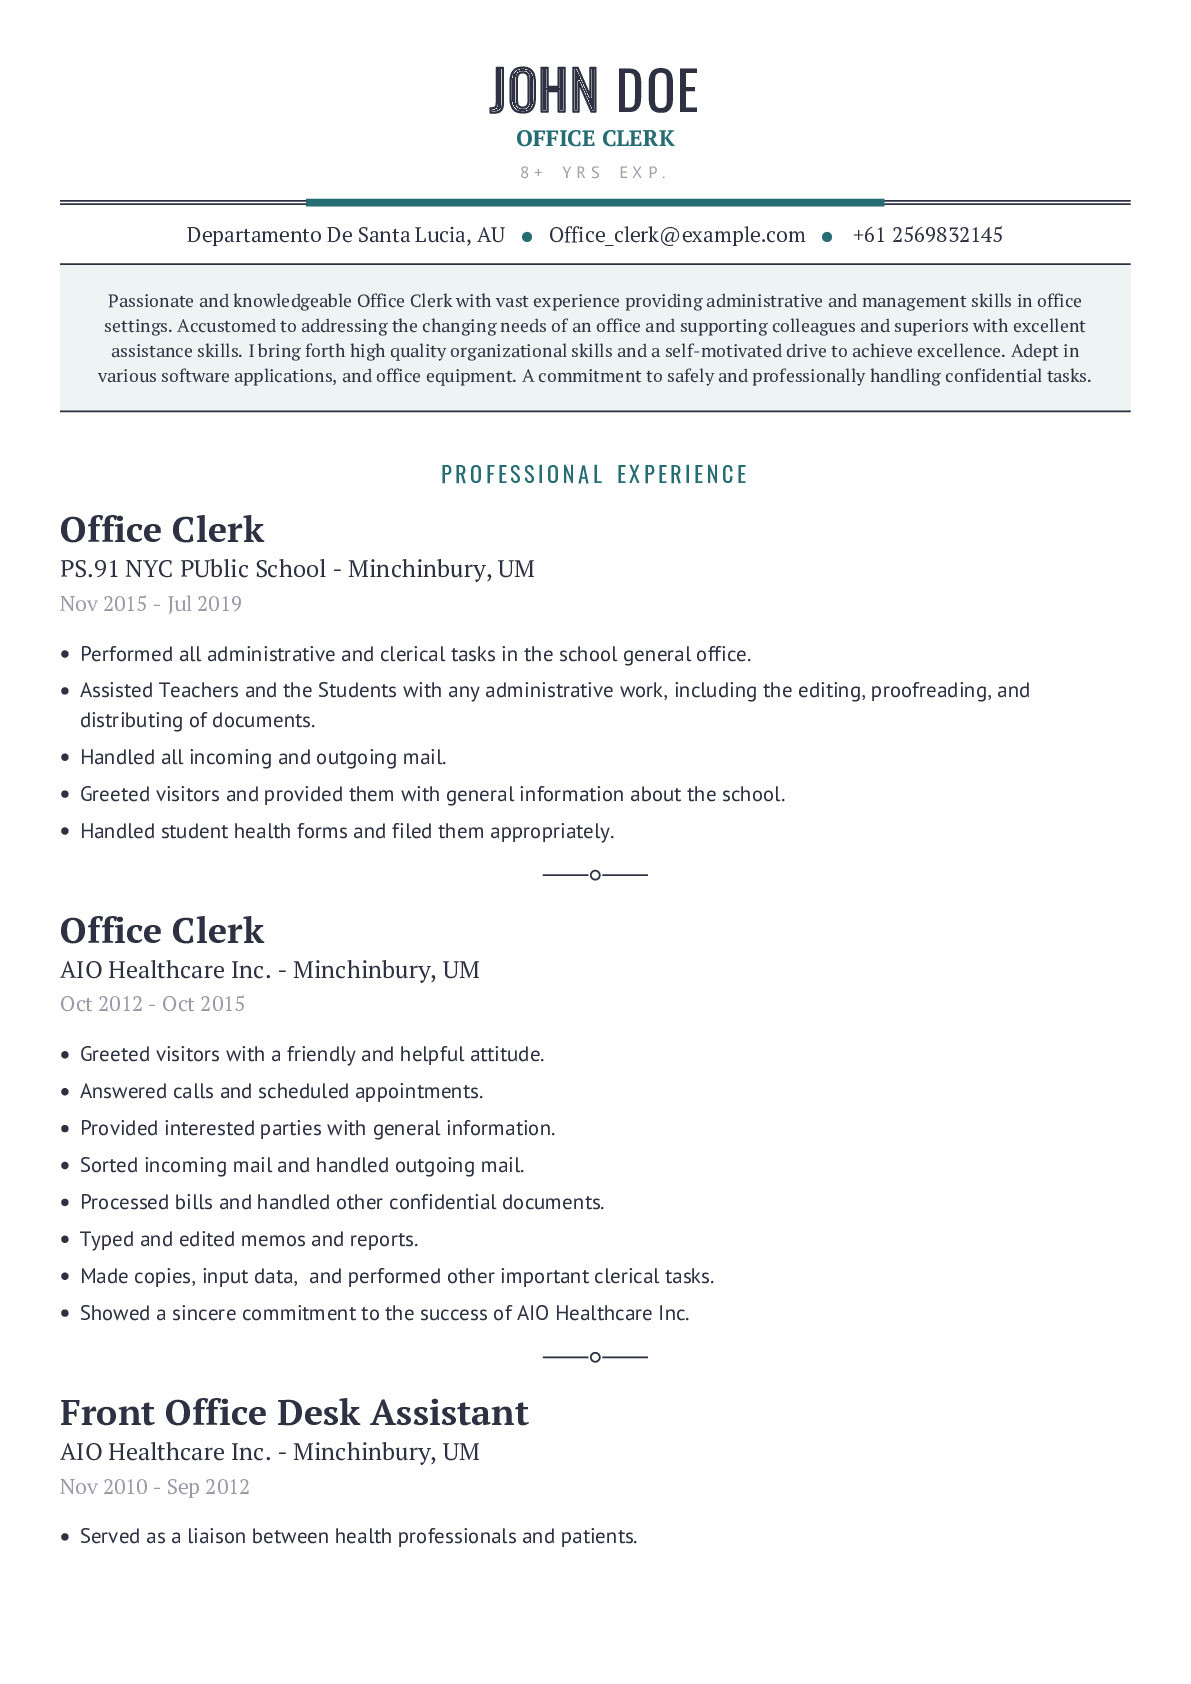 Sample Resume for Clerical Office Work Office Clerk Resume Example with Content Sample Craftmycv